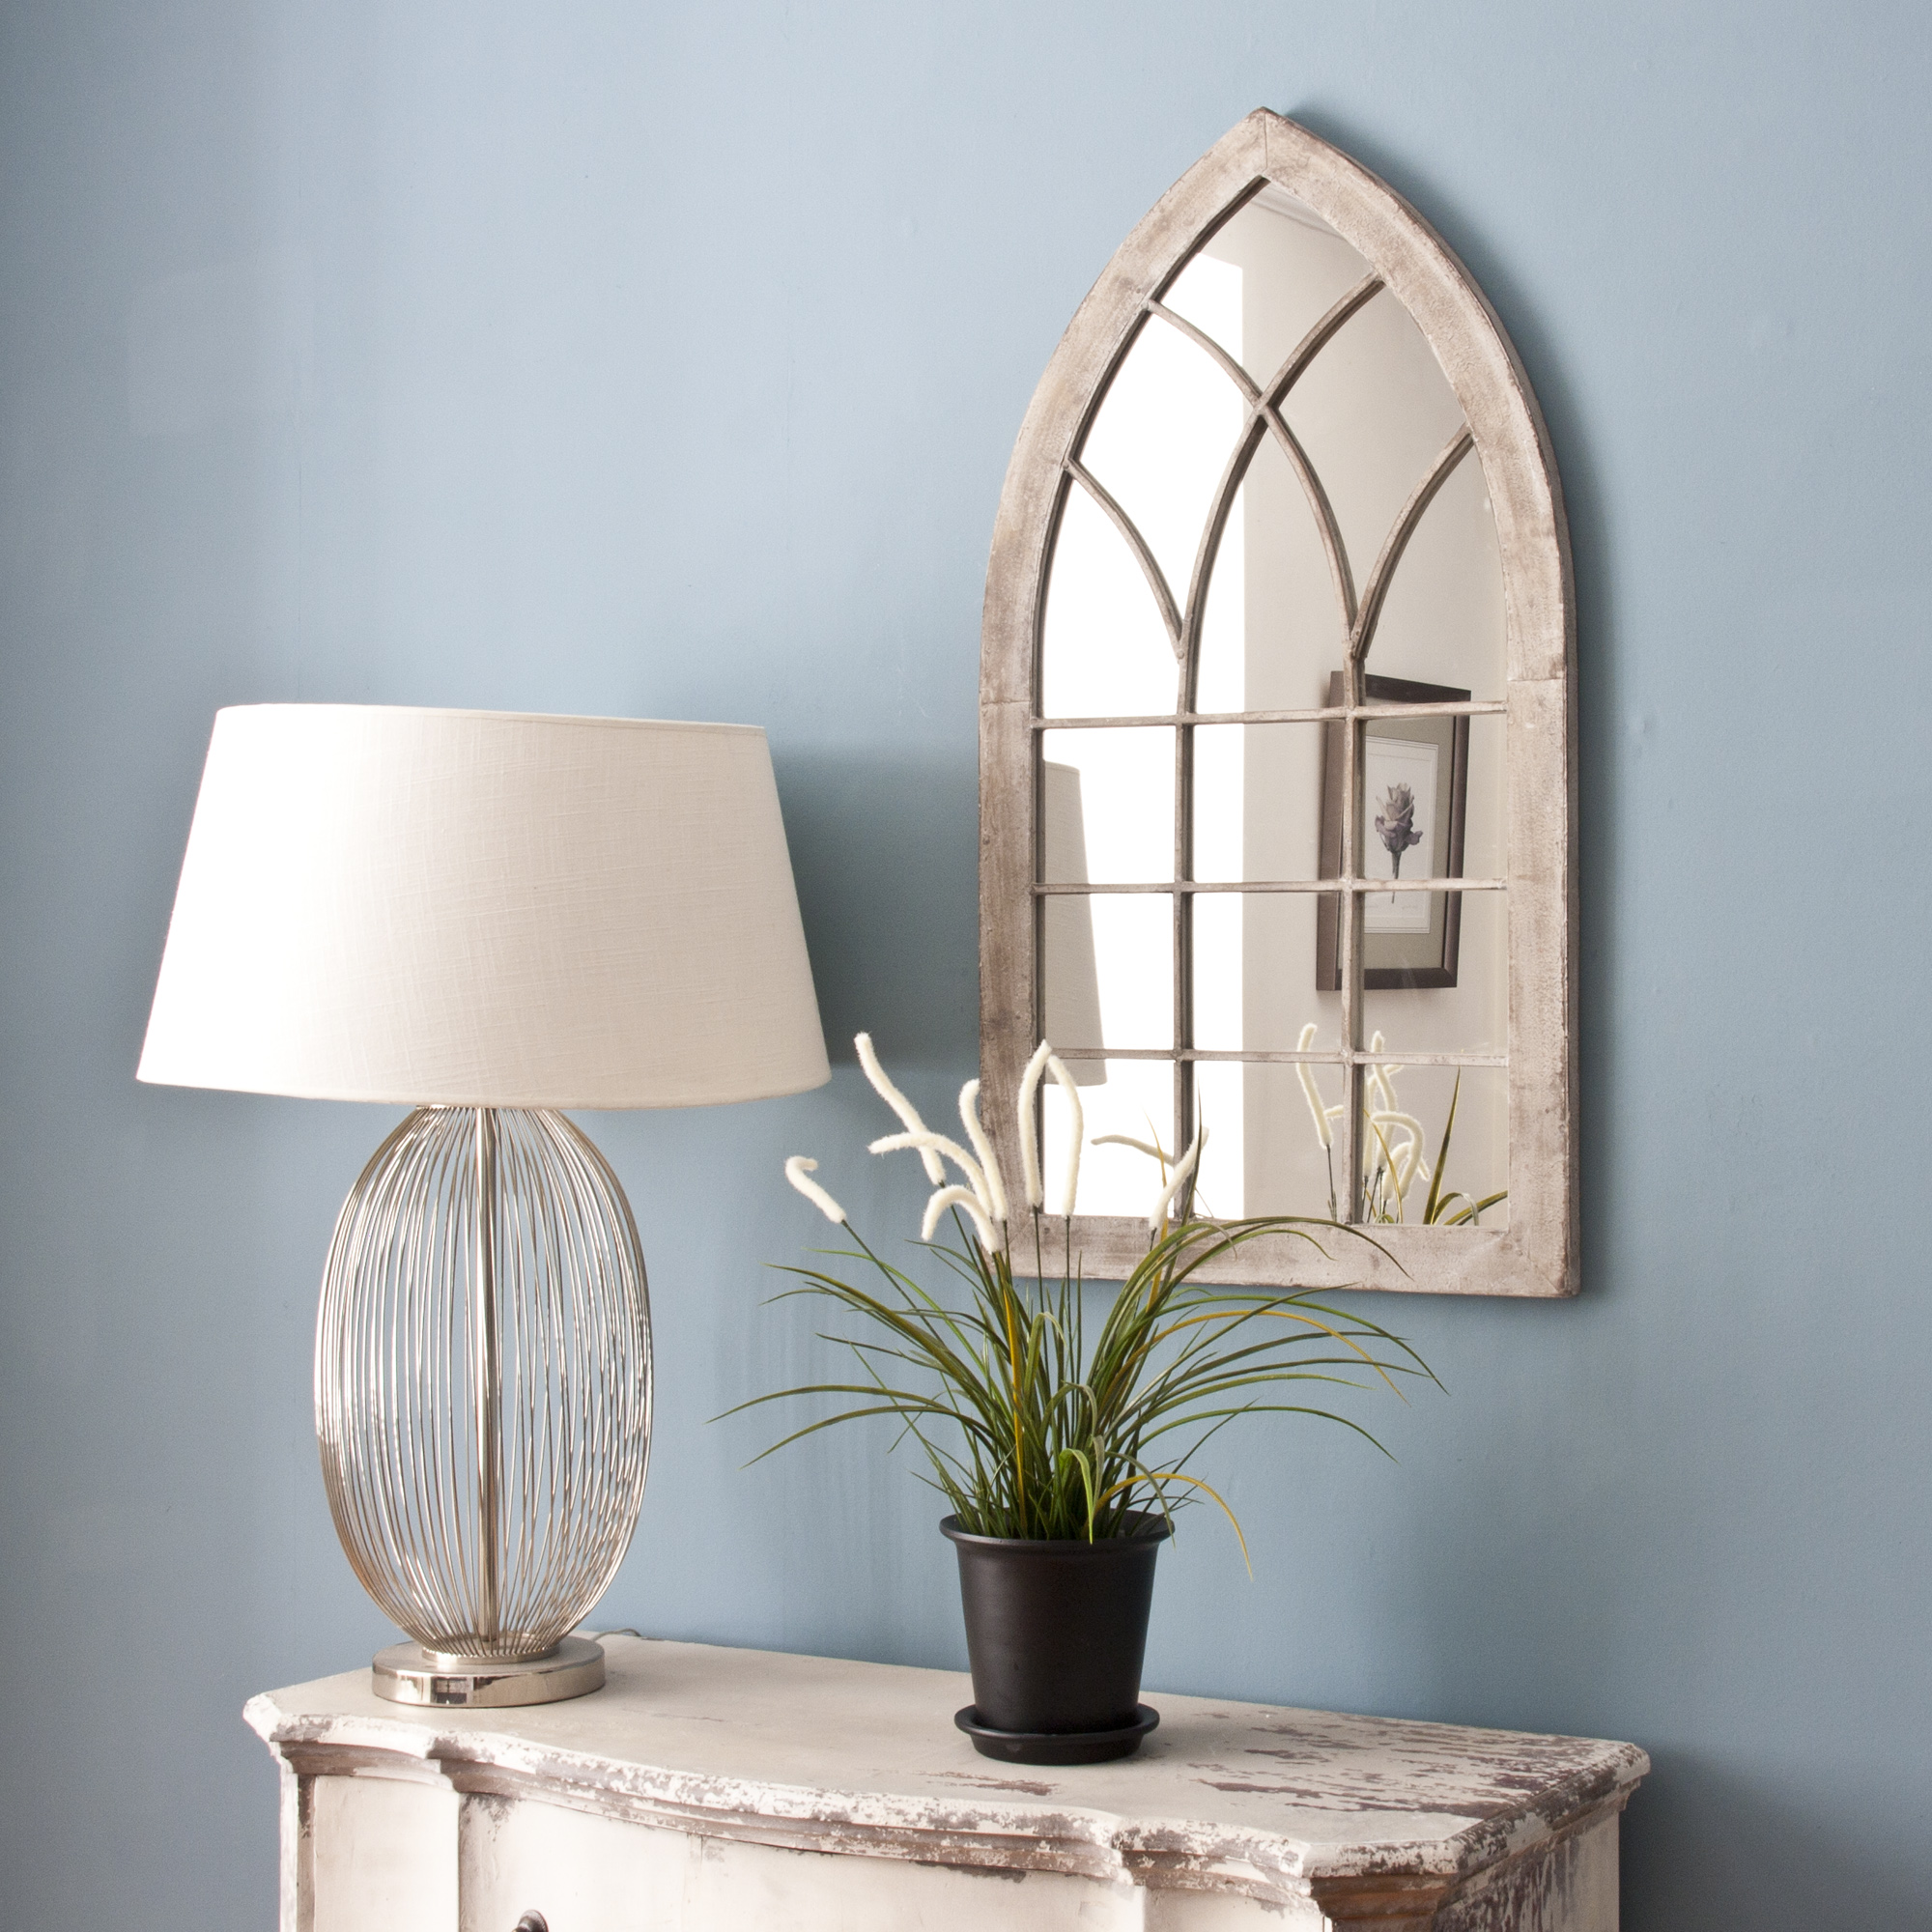 Hallway Mirrors in contemporary & traditional styles | Decorative